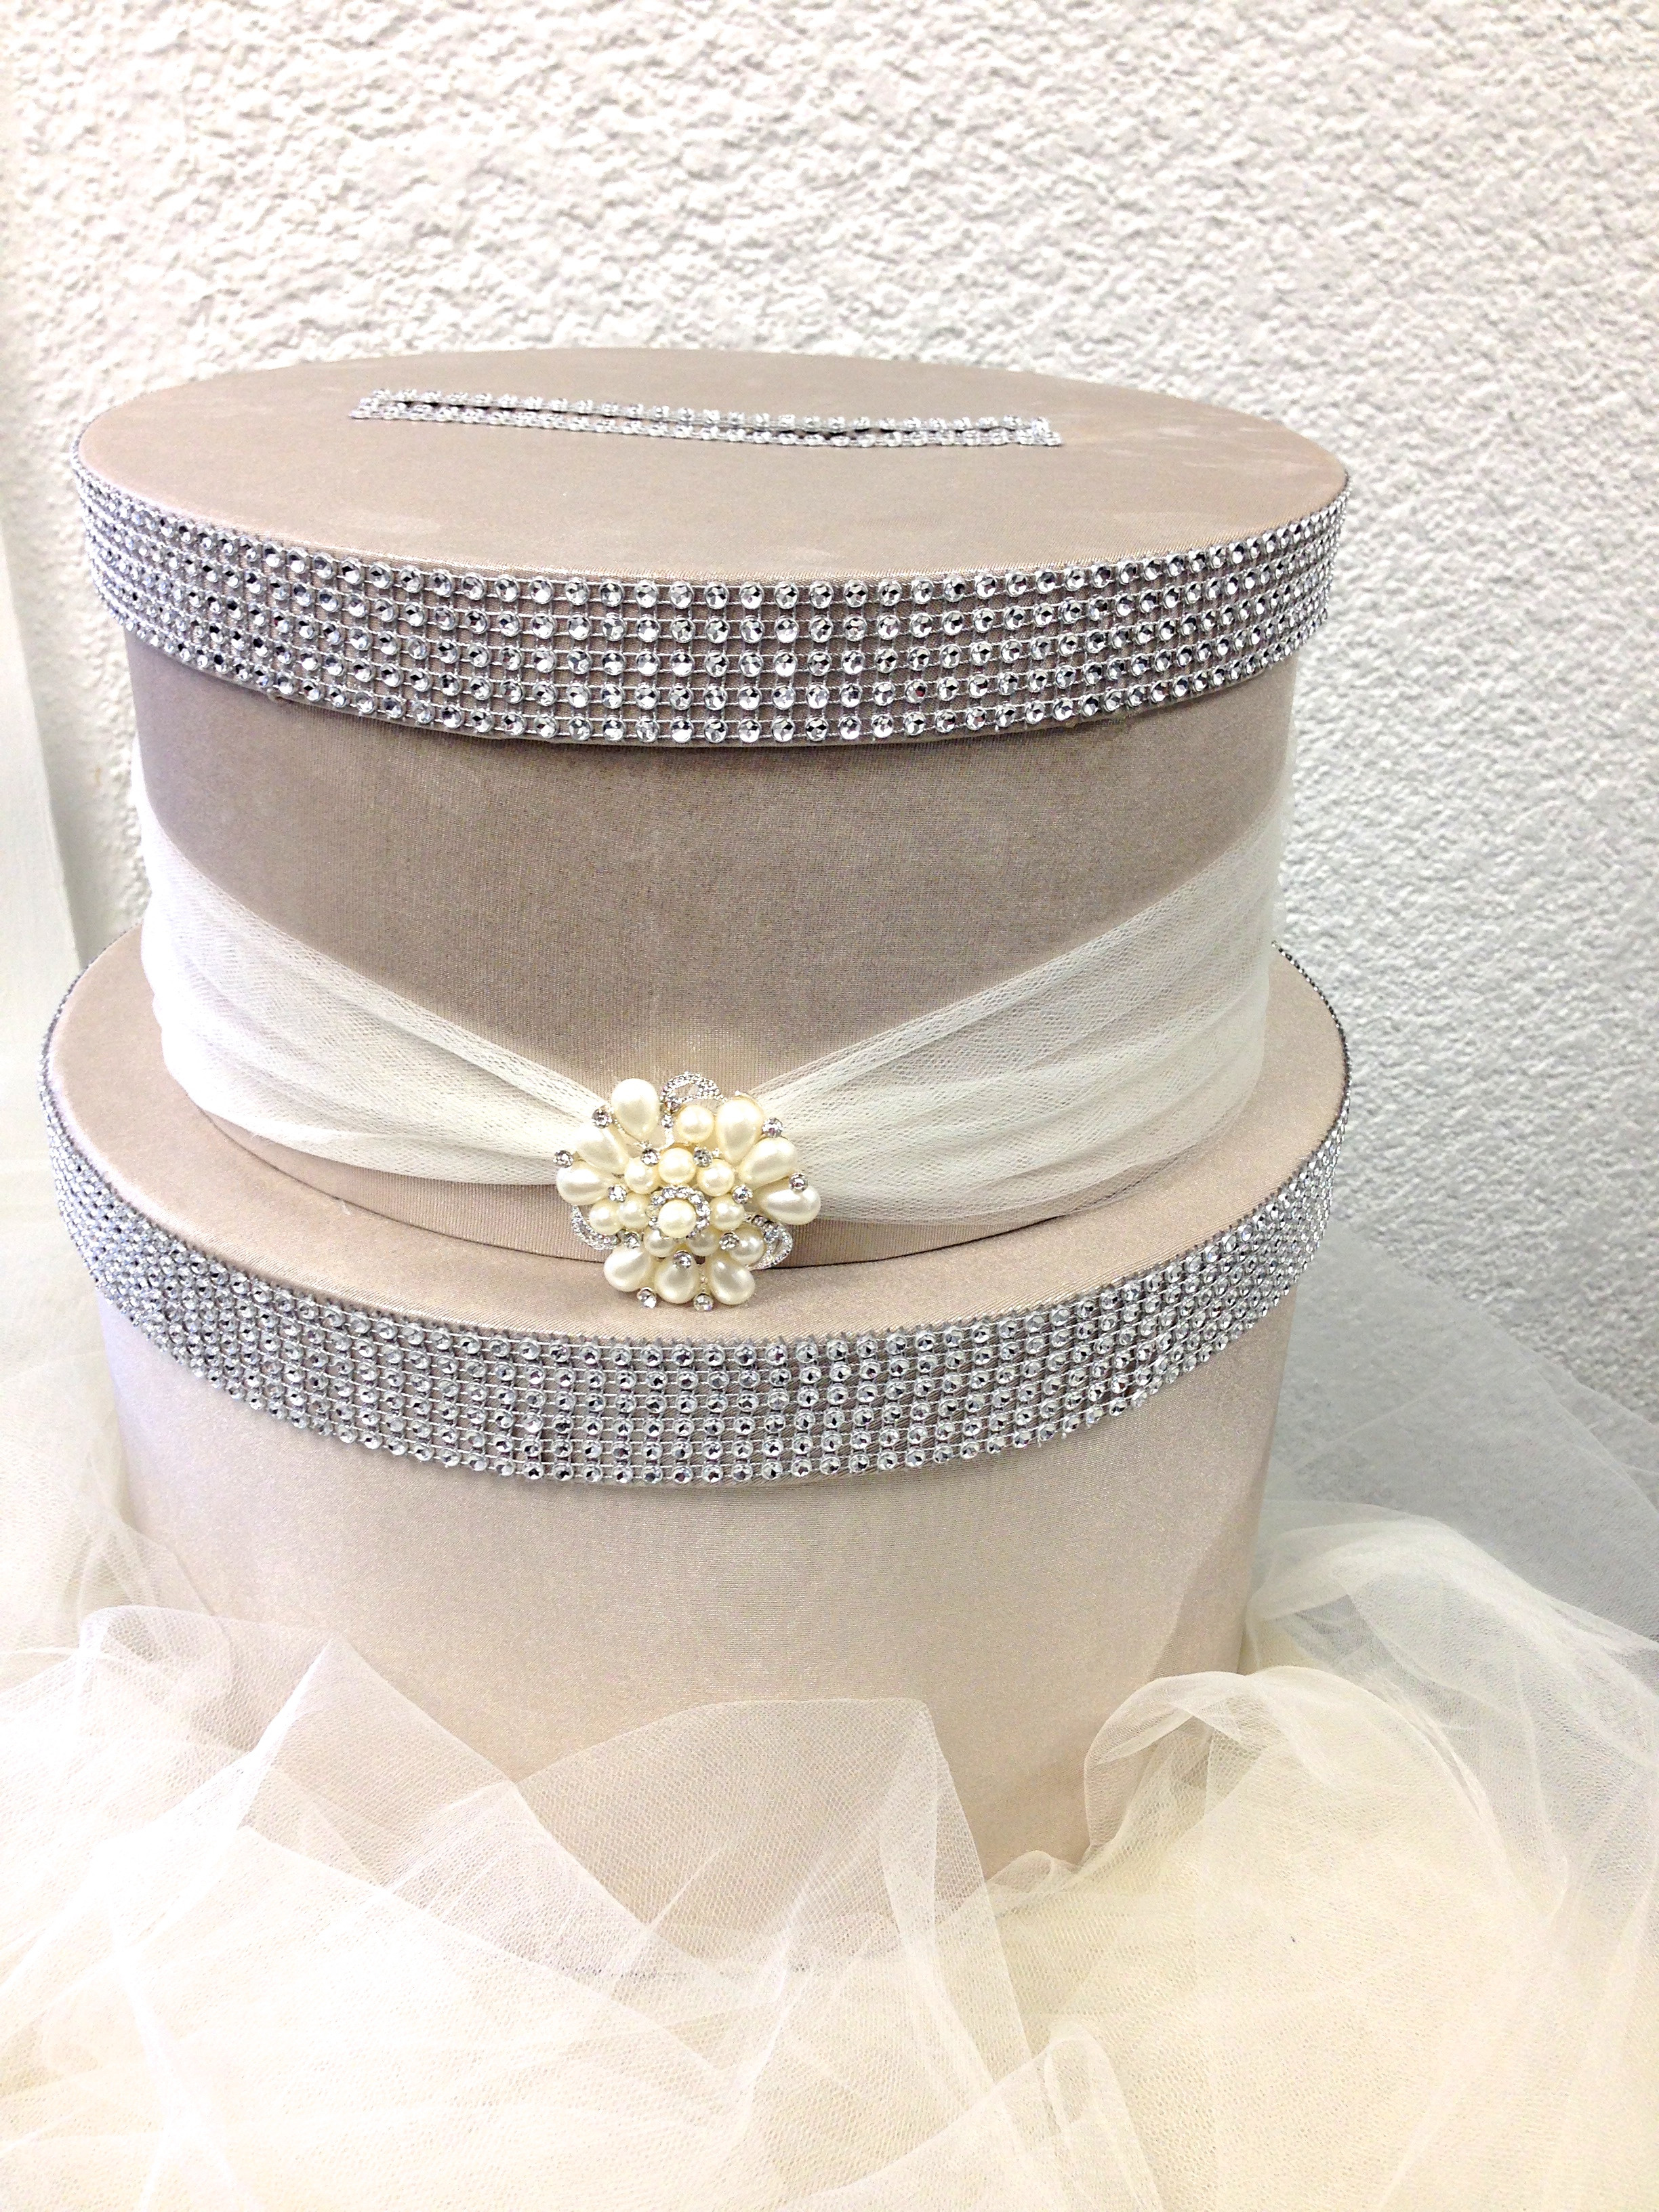 Best ideas about Wedding Card Boxes DIY . Save or Pin DIY Wedding Card Box Now.